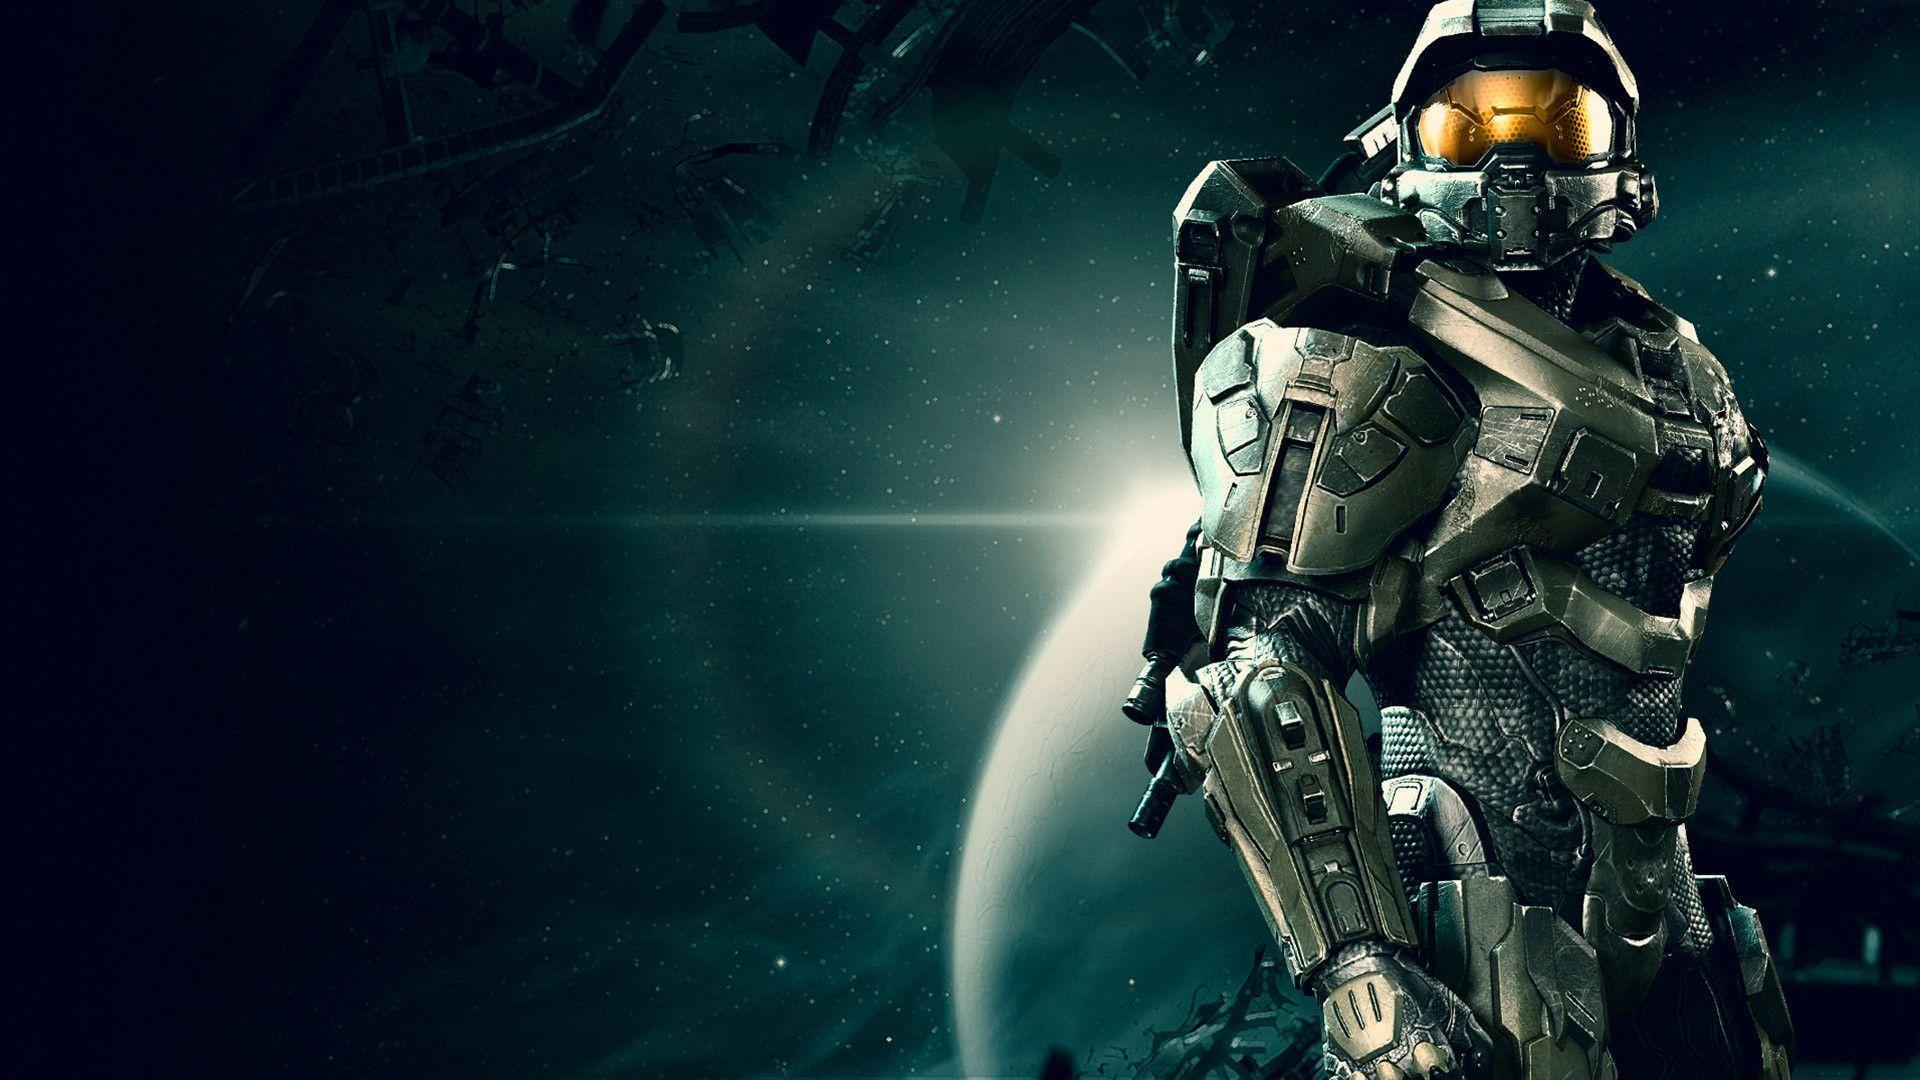 Halo Master Chief Wallpapers Top Free Halo Master Chief